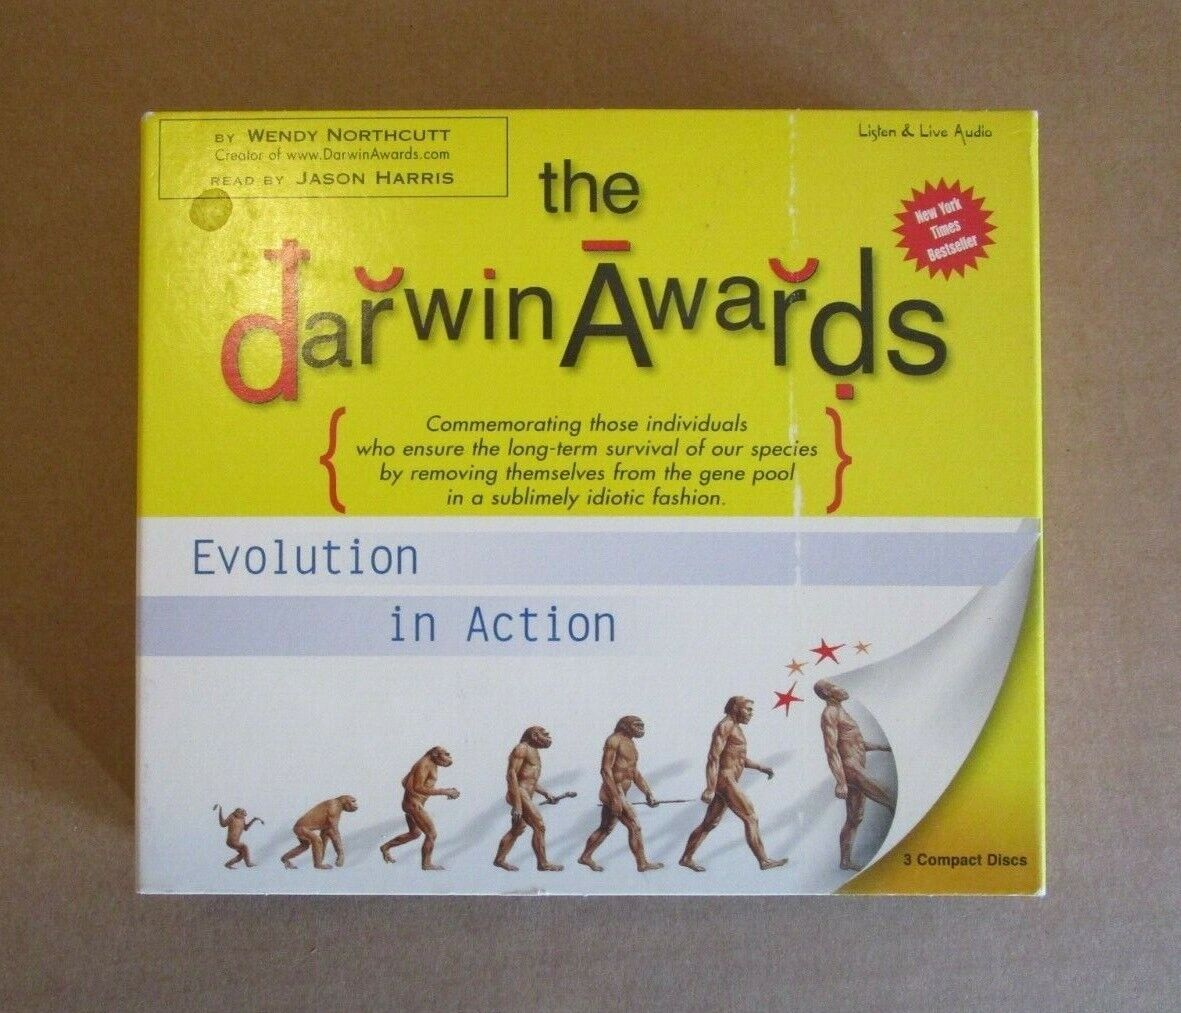 The Darwin Awards One By Wendy Northcutt Audio Book 3 CDs 2001 - $5.00